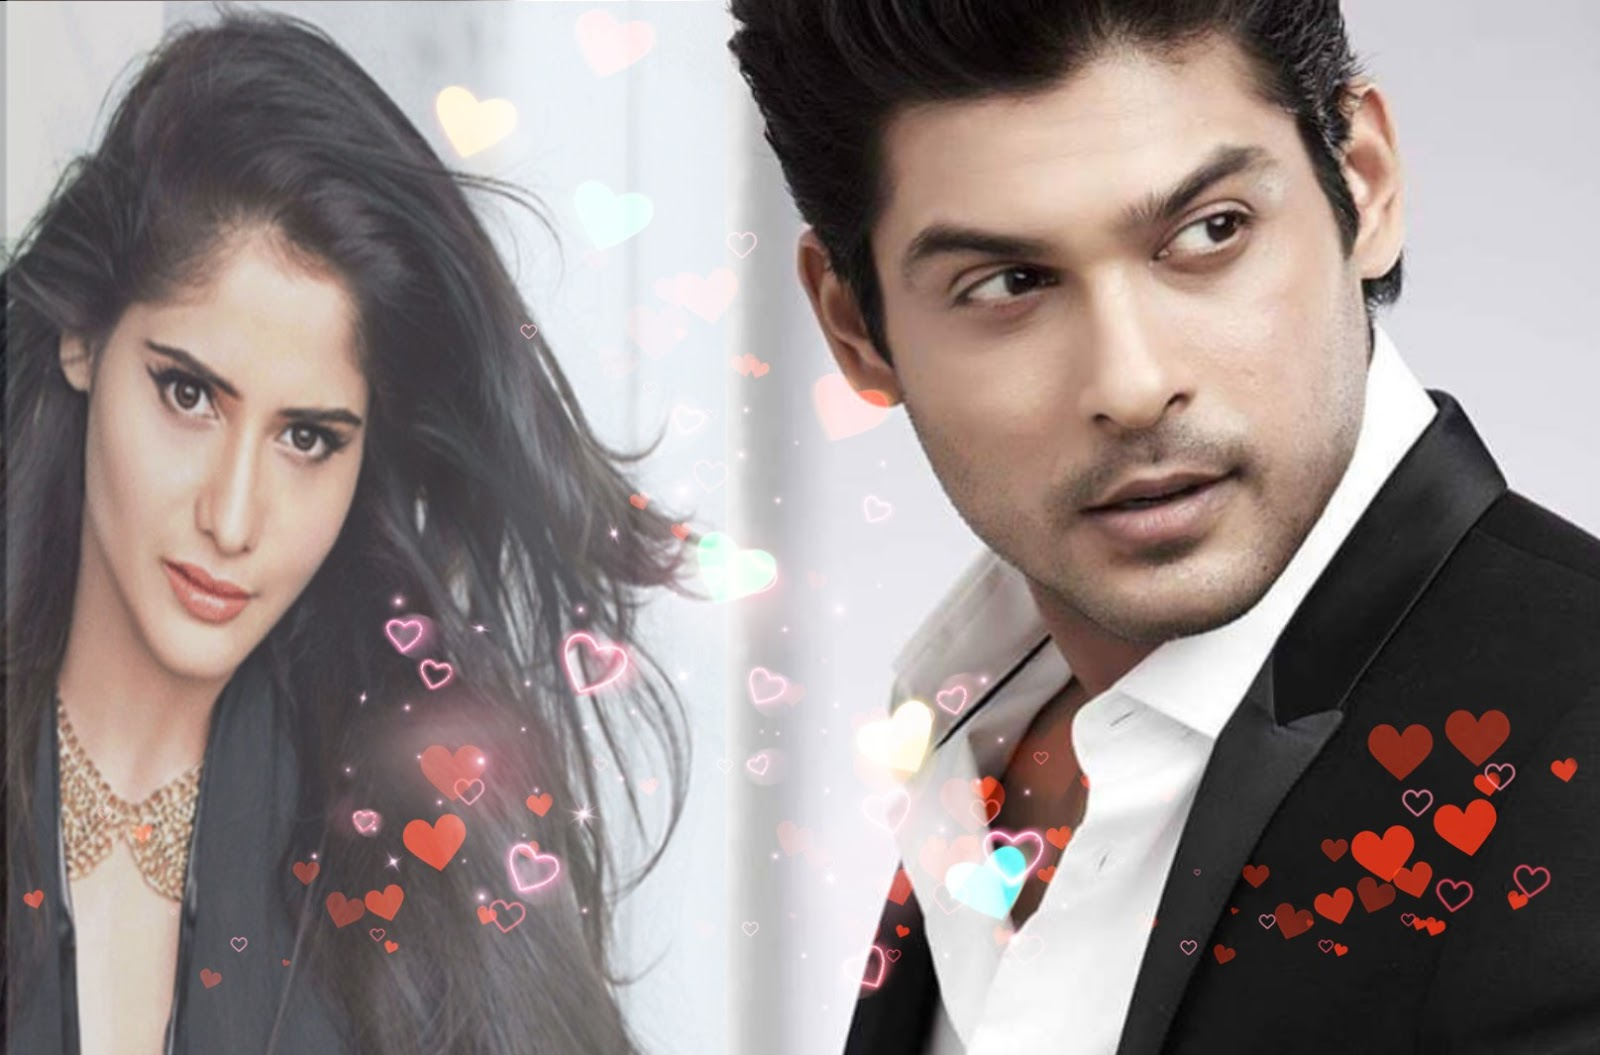 Siddarth shukla and arti singh in bigg boss 13